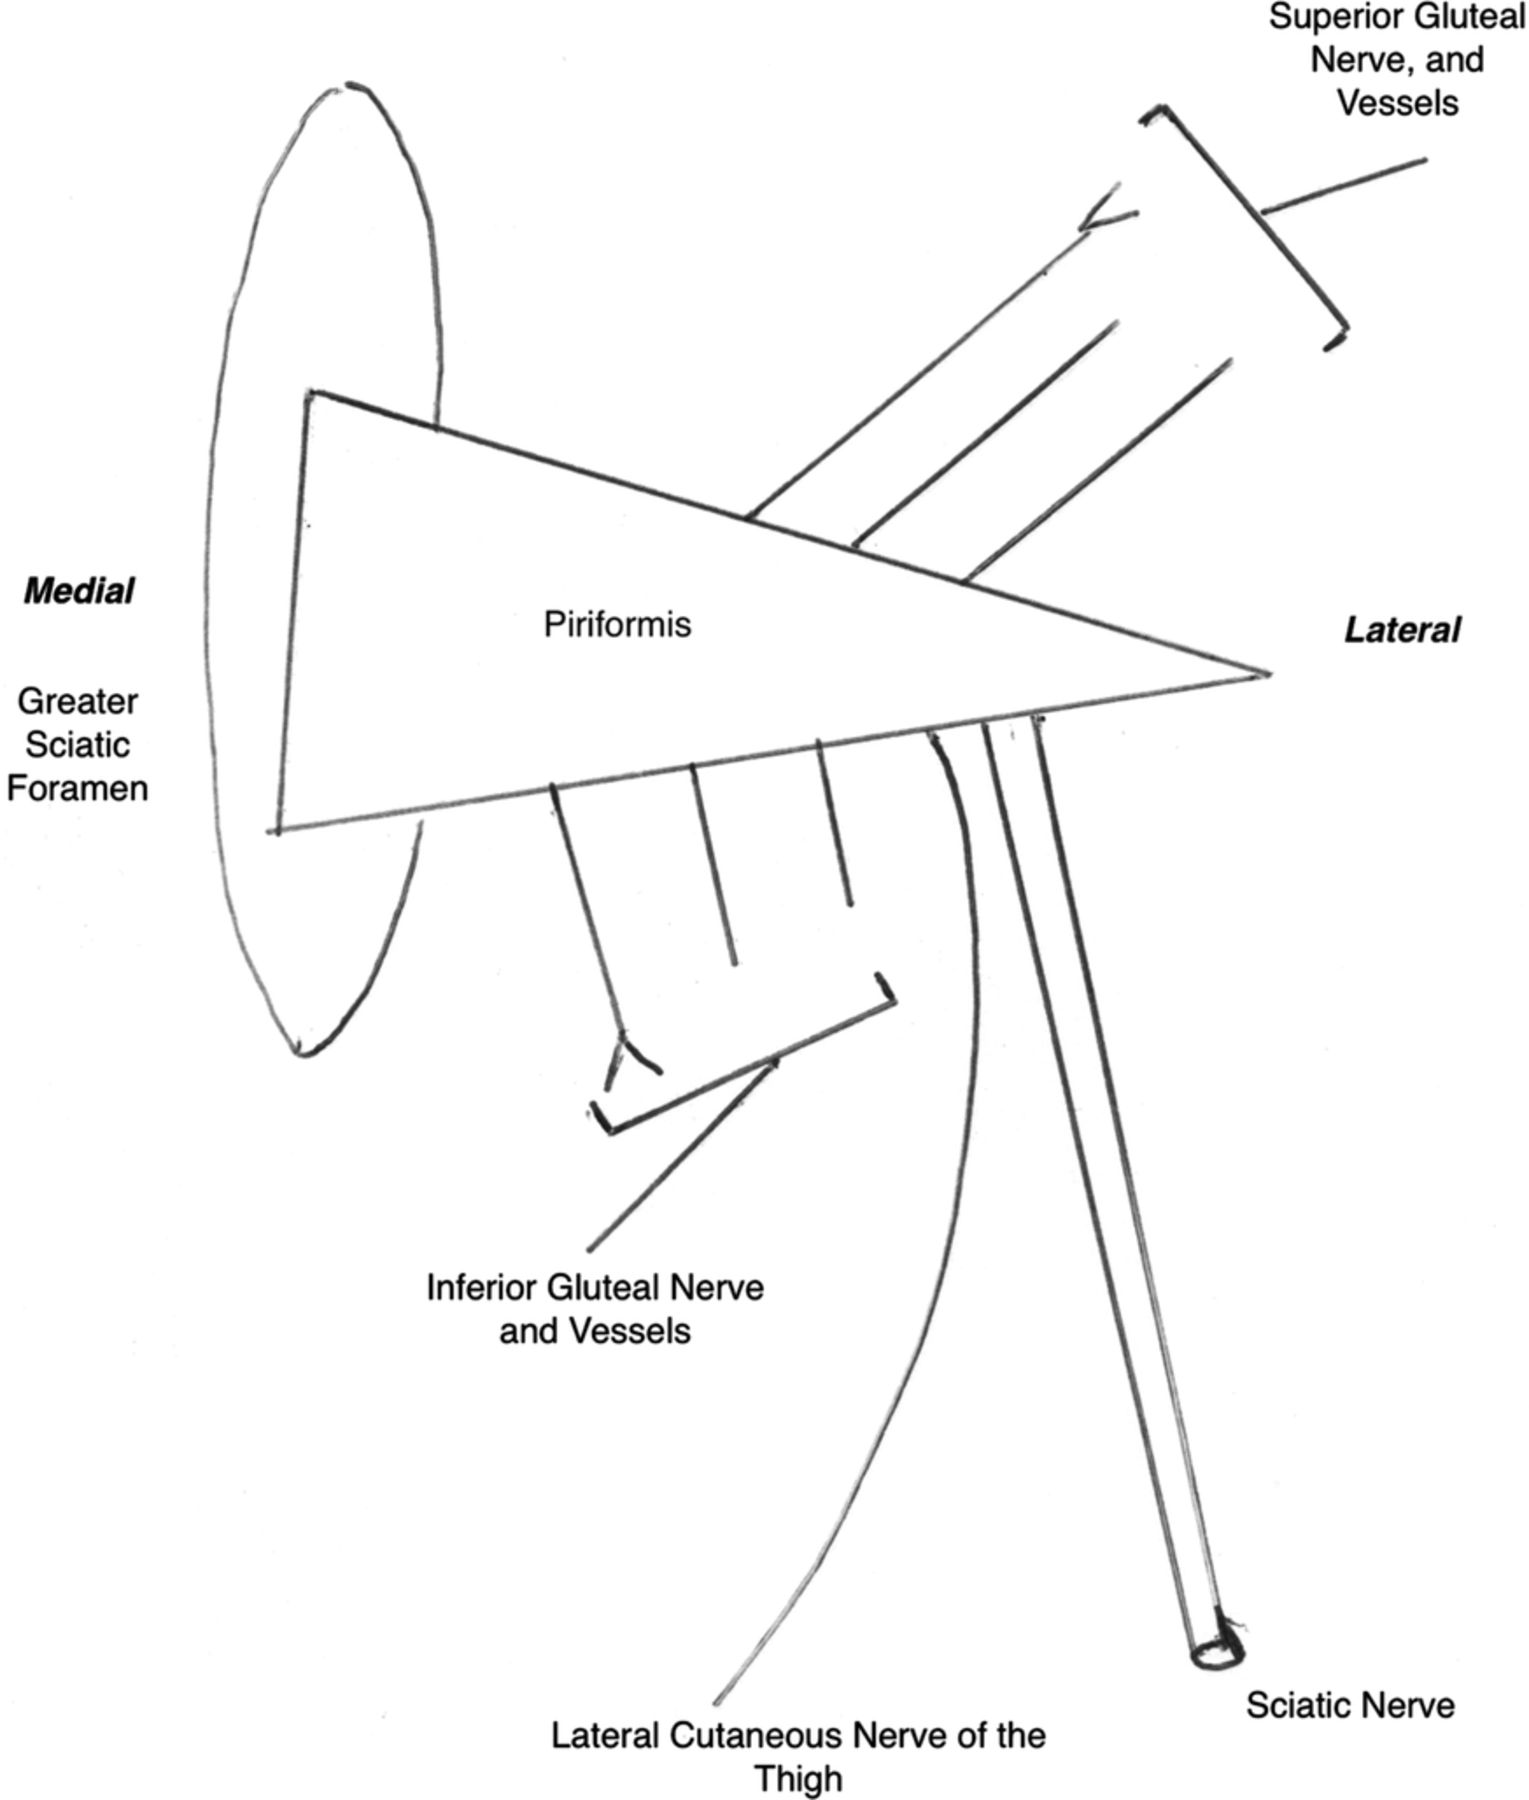 Acute Gluteal Compartment Syndrome Superior Gluteal